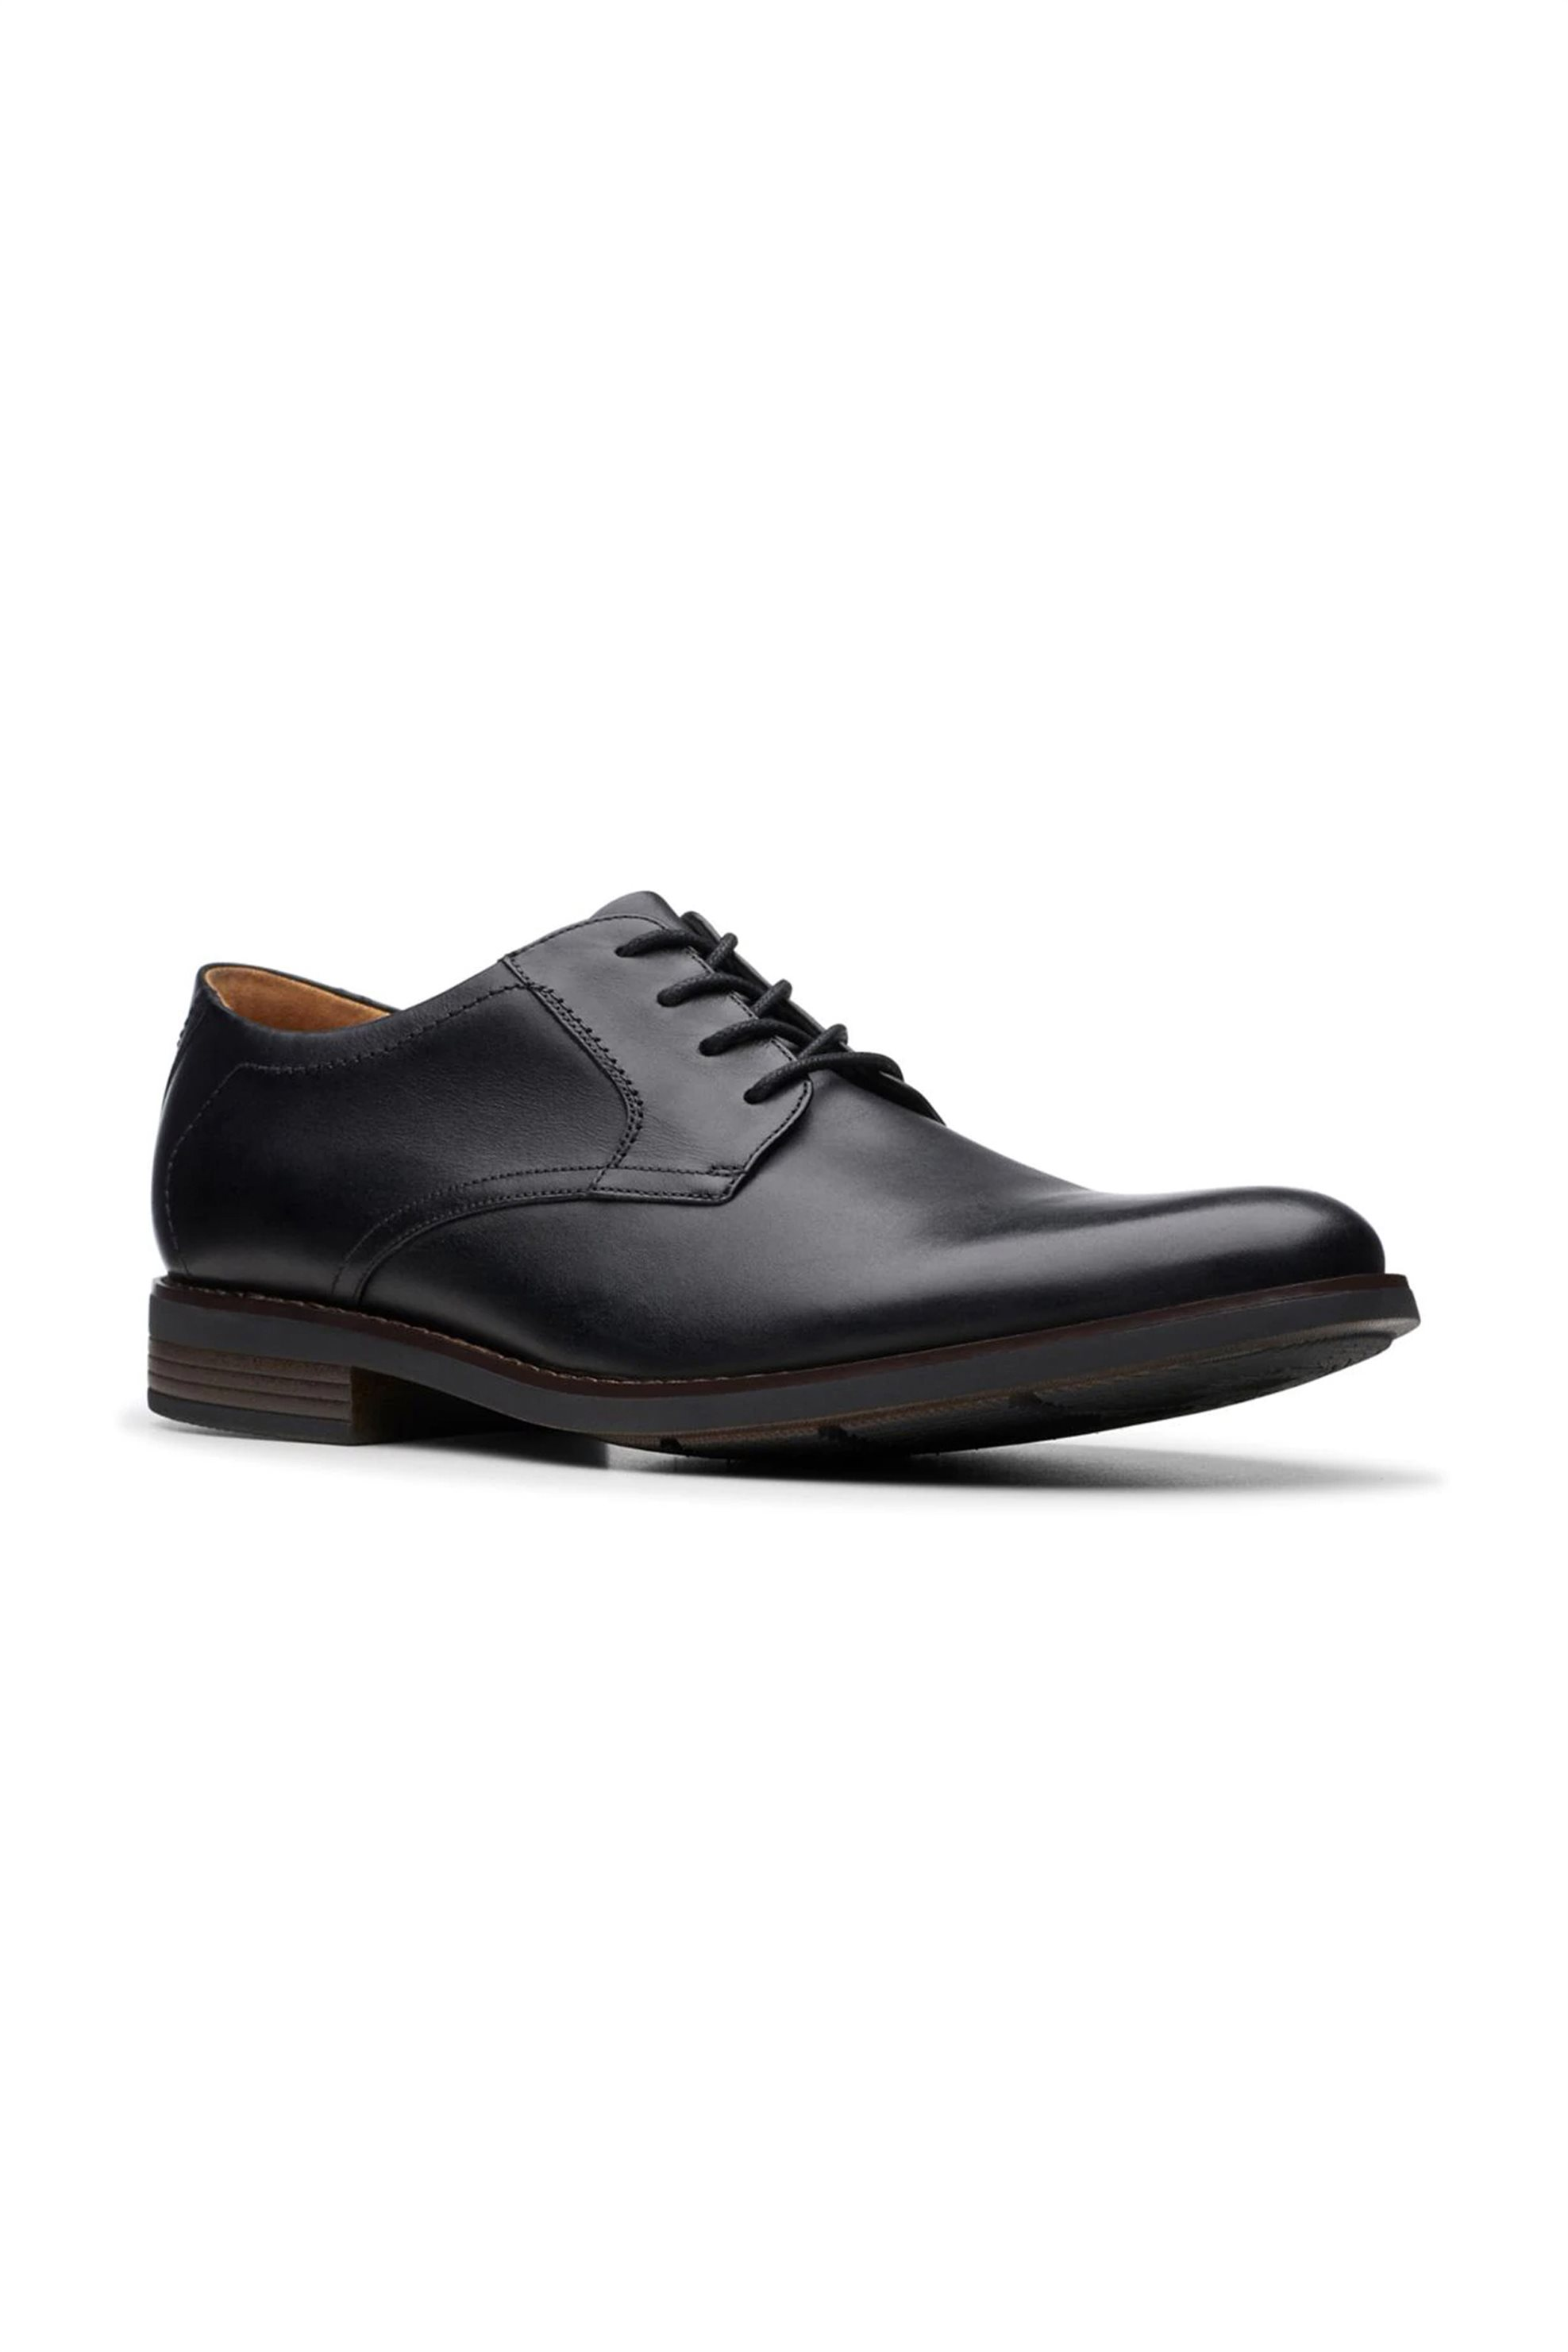 "Clarks ανδρικά δερμάτινα παπούτσια oxford ""Becken Lace"" – 26145295 – Μαύρο"